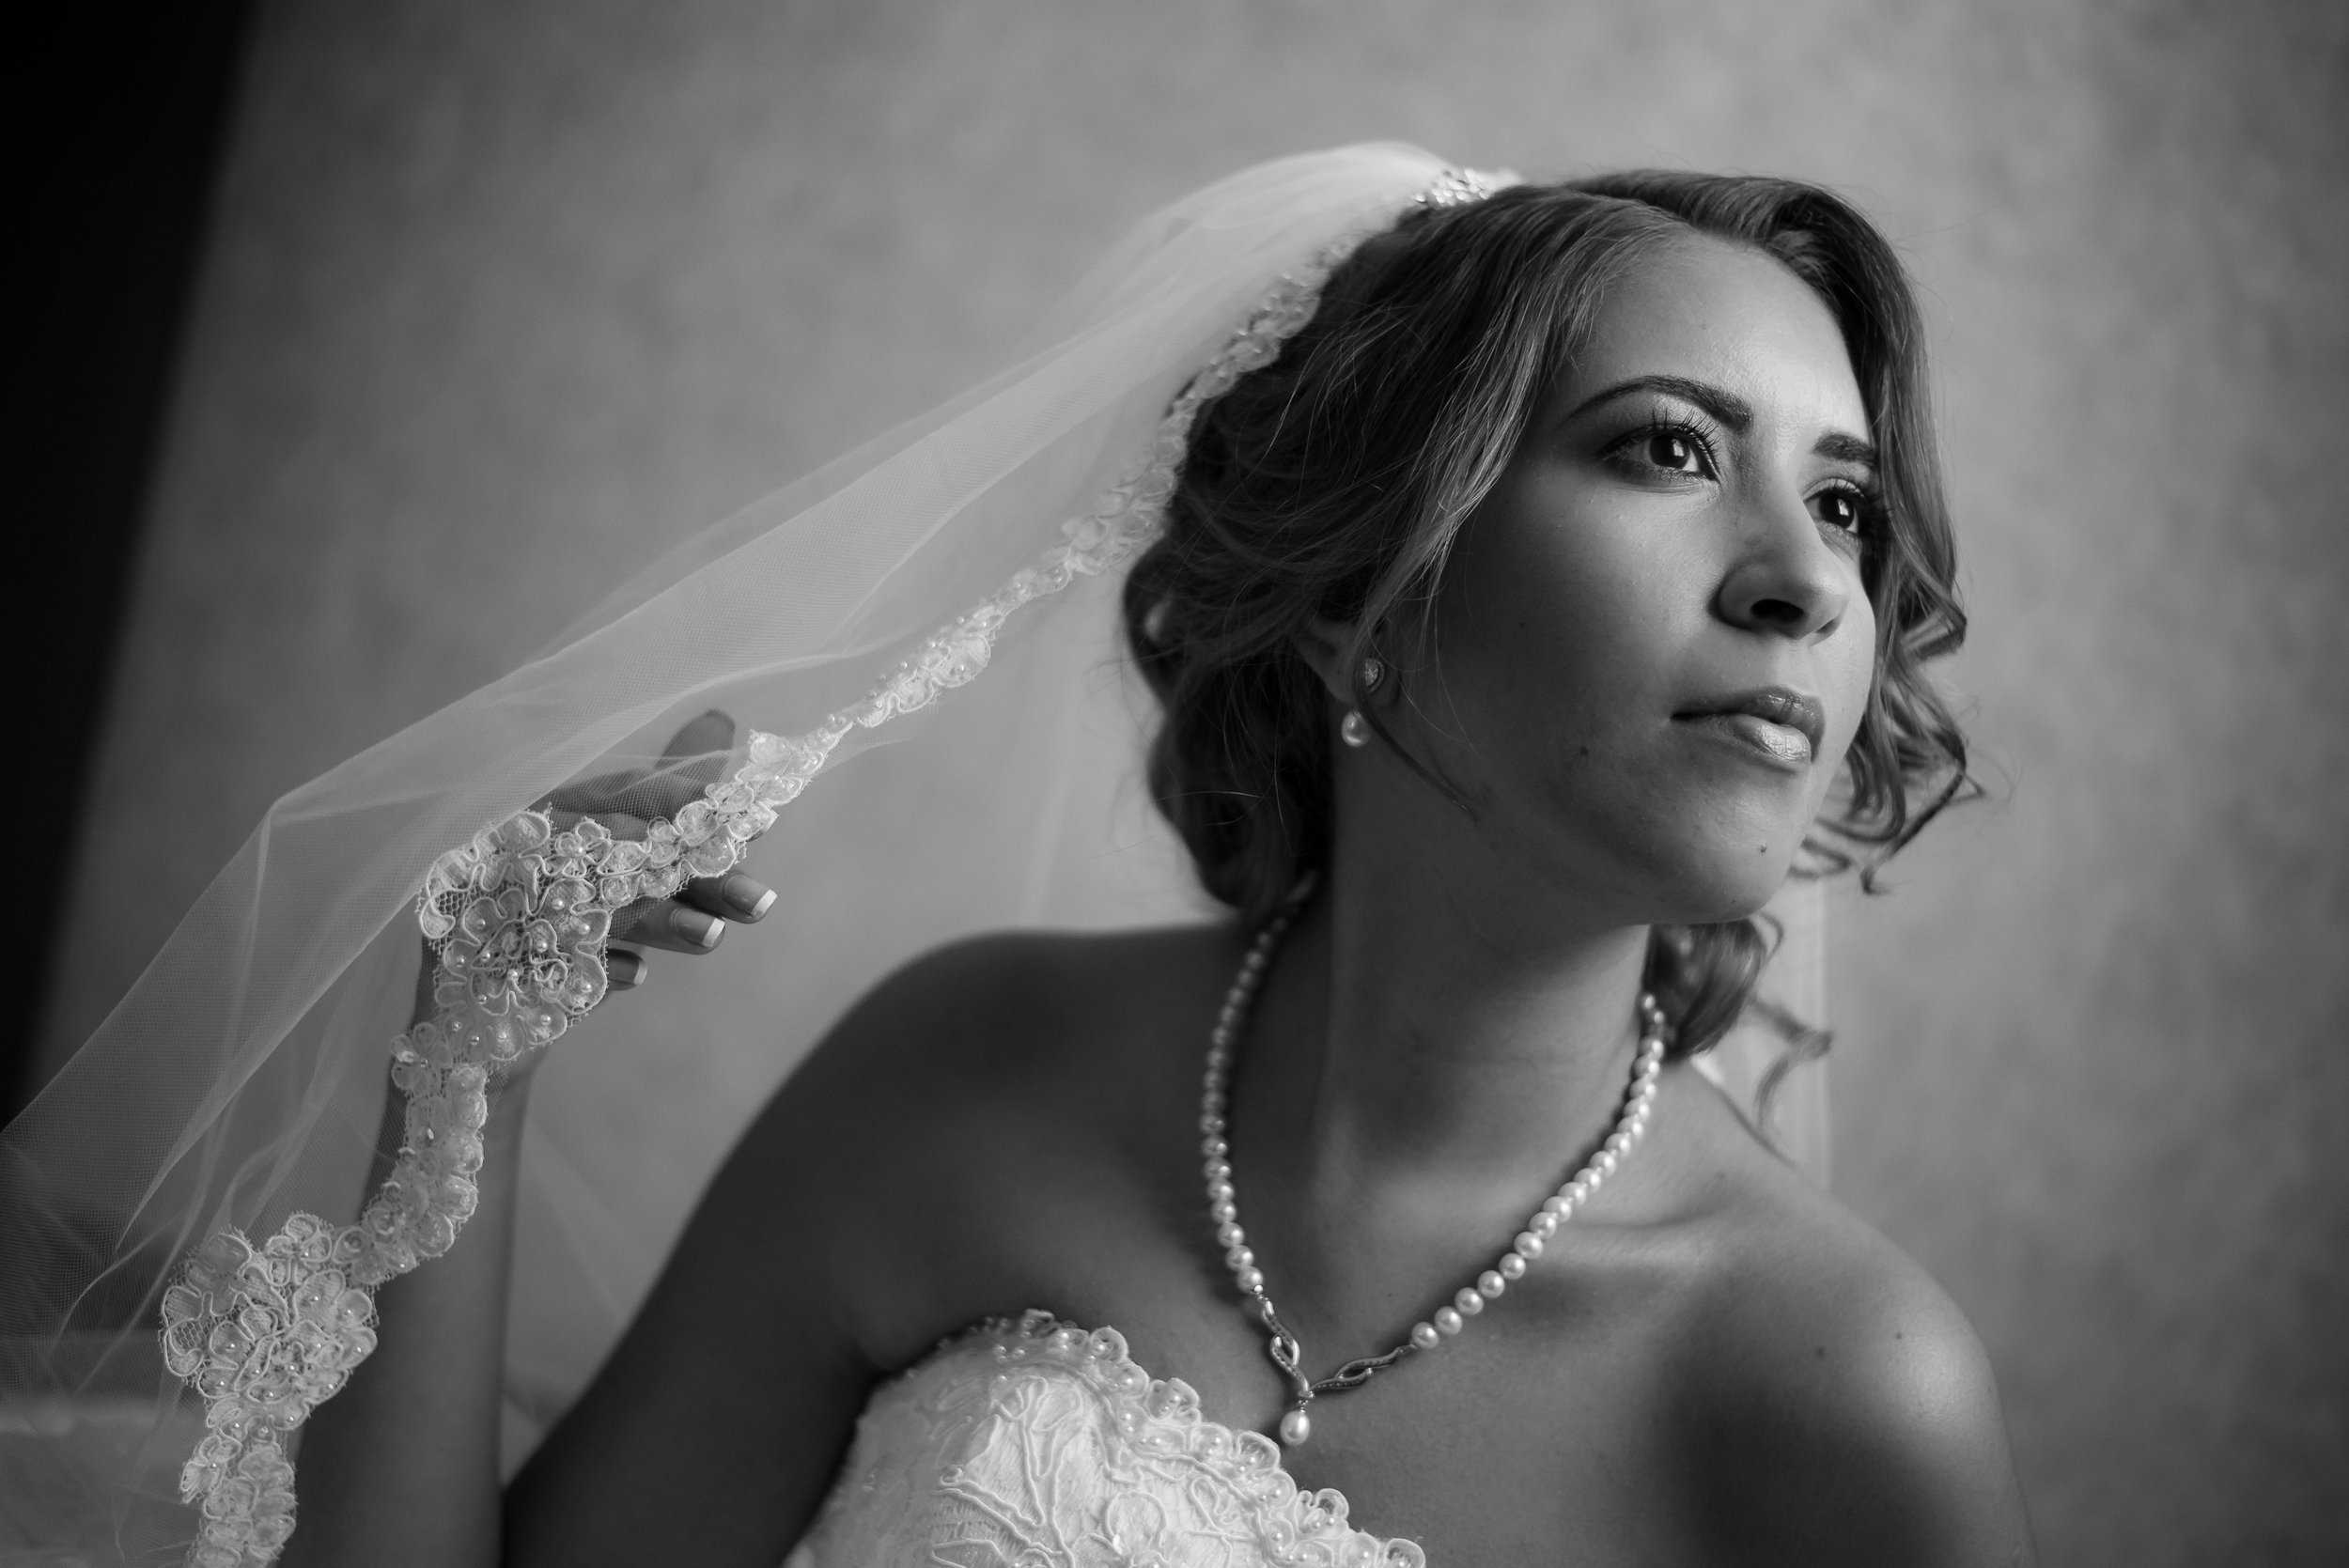 Karlenis-Juancarlos-Wedding-Garcia-Photography-7153.jpg